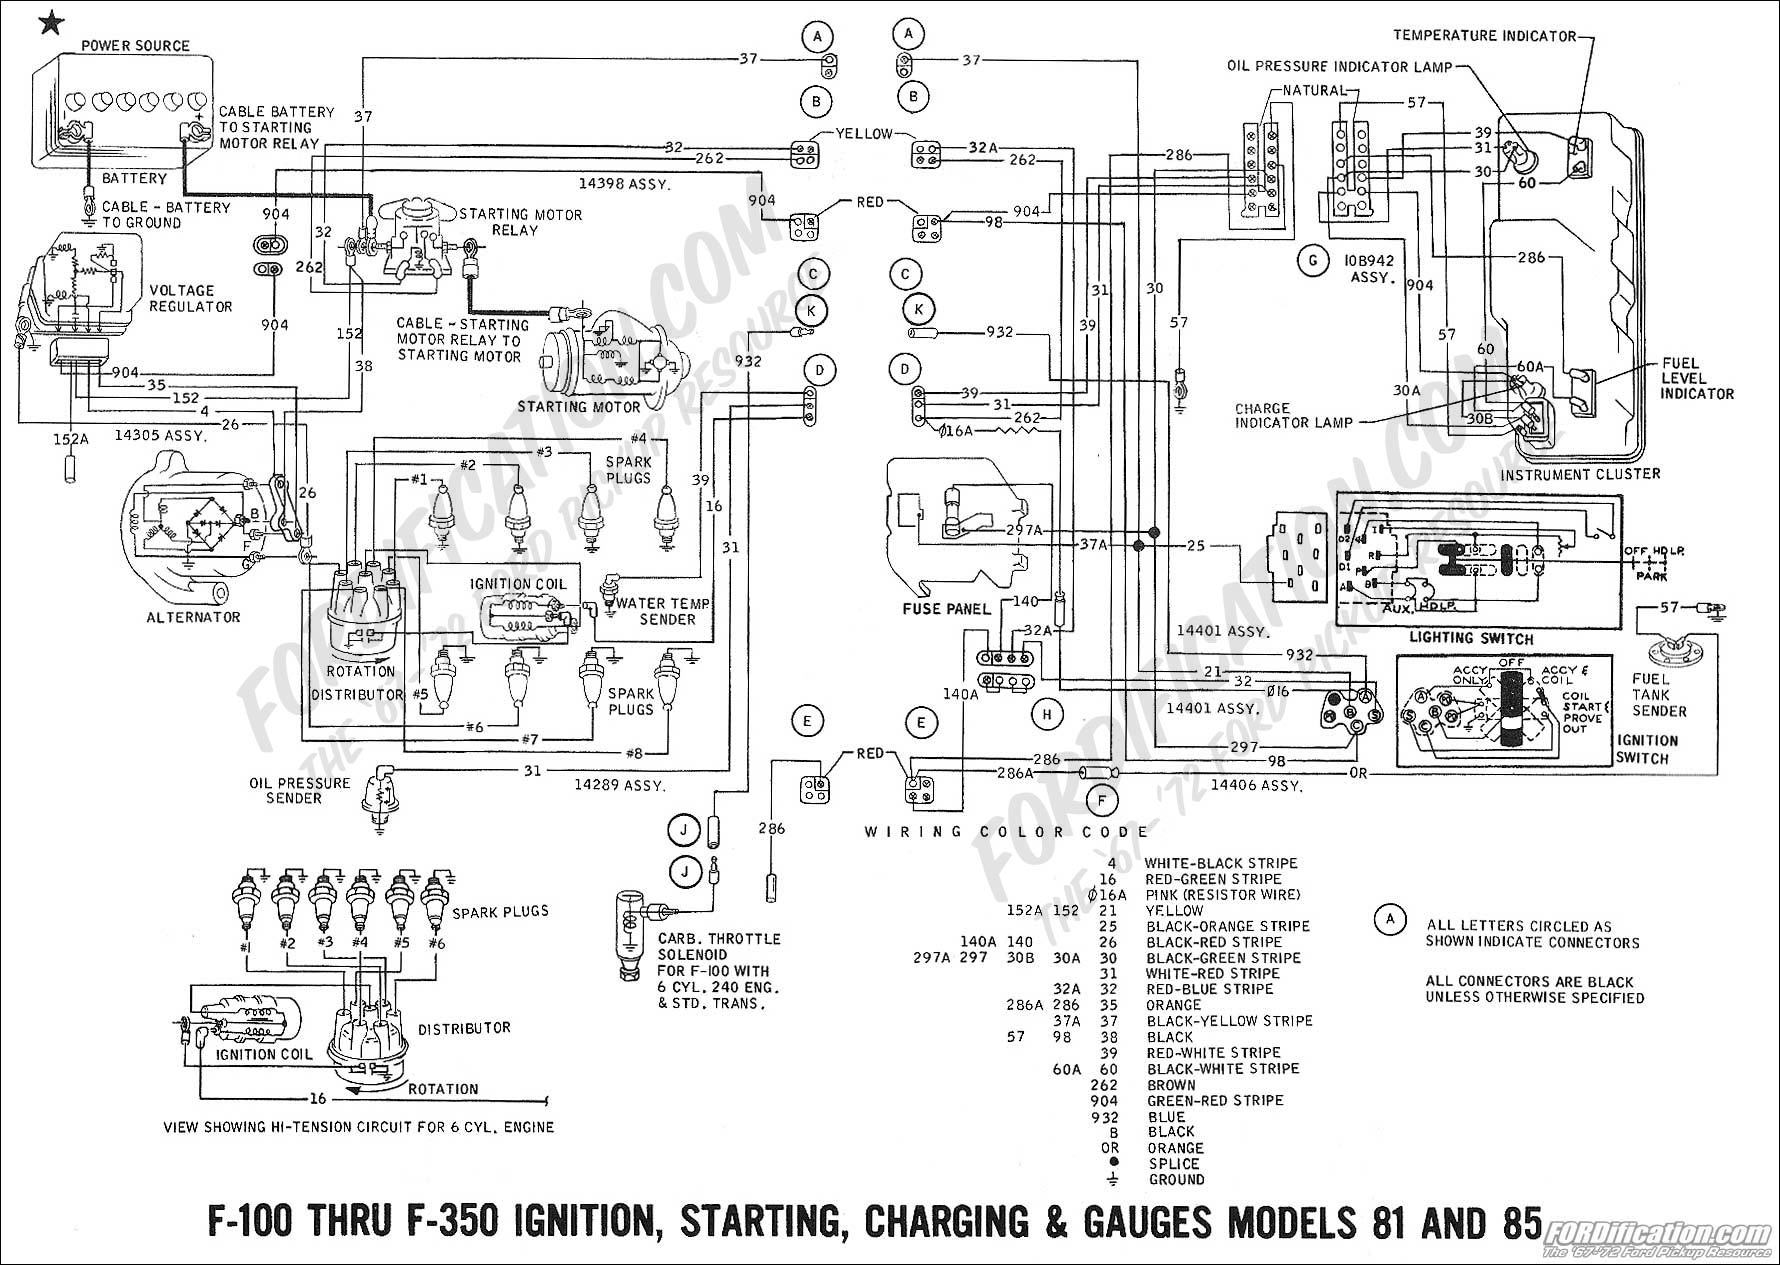 80 wiring_1969charging2_11e20ef93683157eb5c91a9f1025e72be7c50ad3 78 wiring diagram ford service manual ford bronco forum Ford Tempo Alternator Wiring Diagram at edmiracle.co